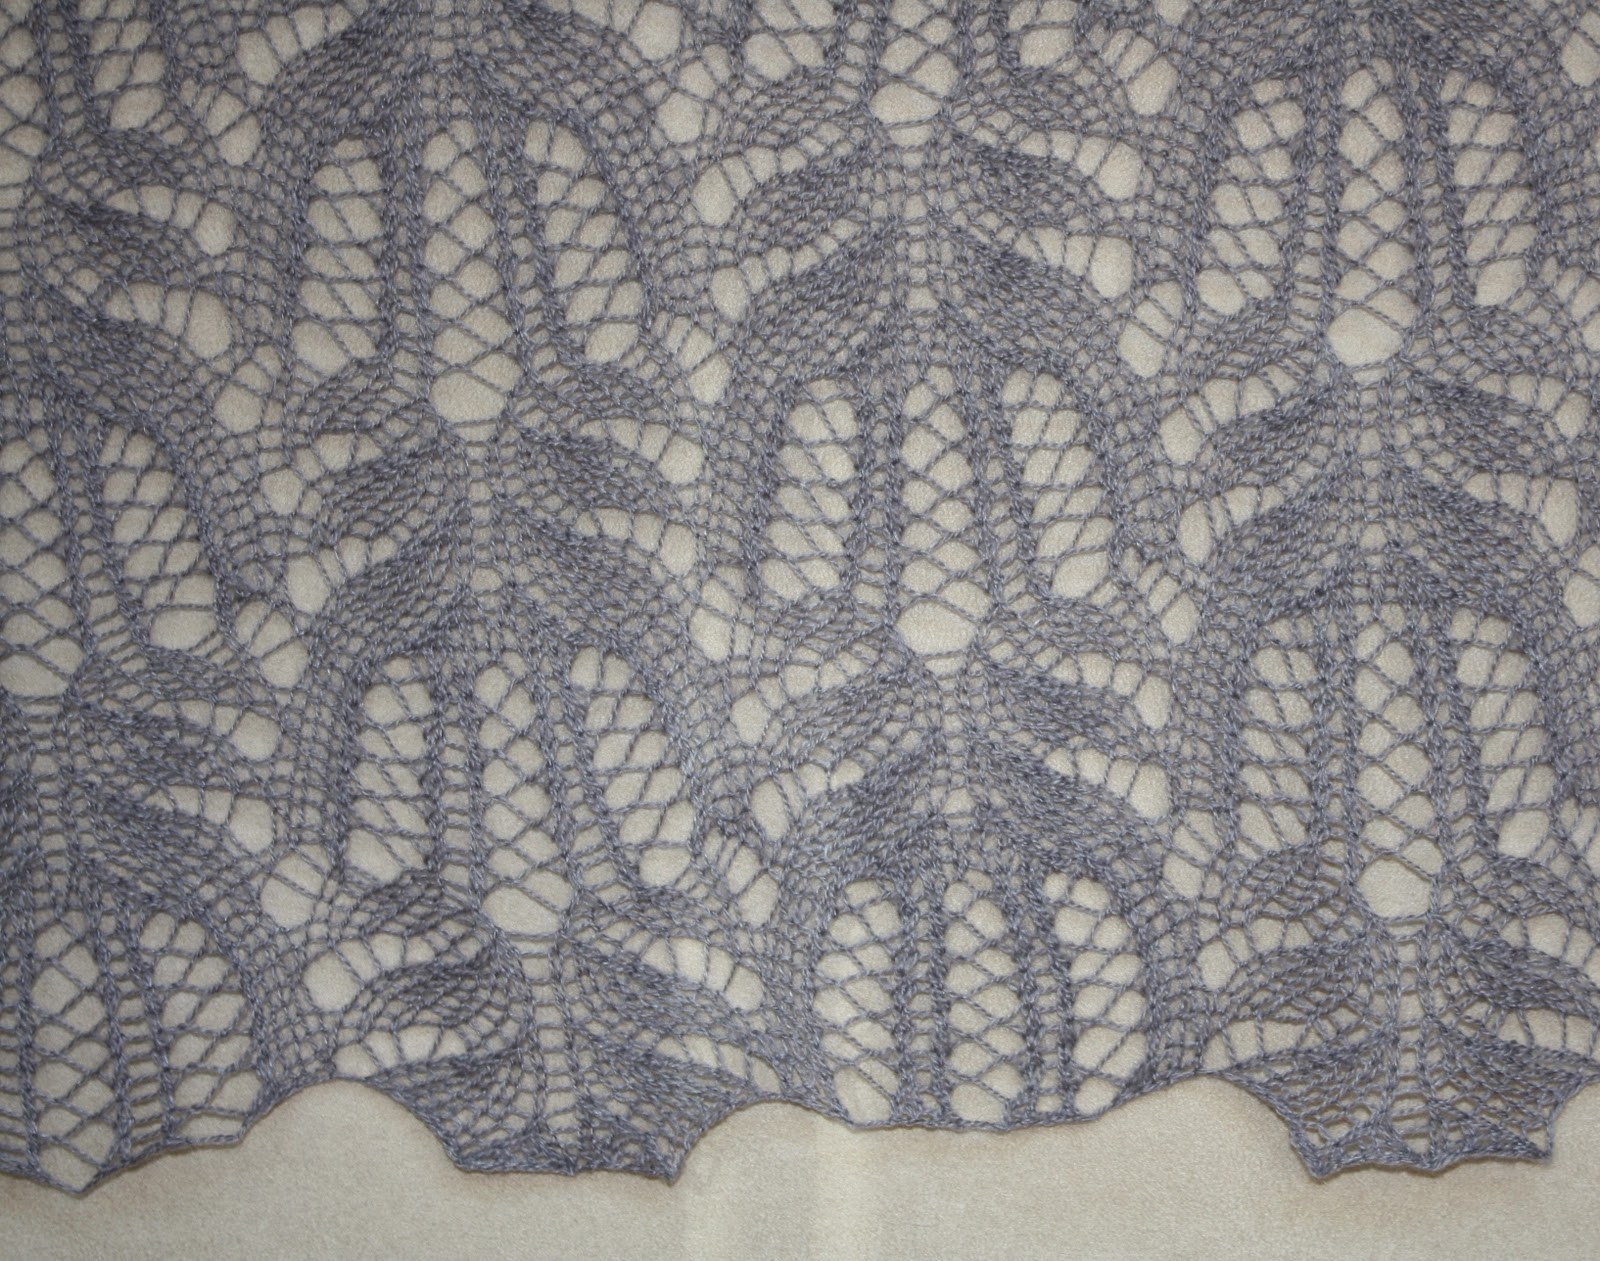 Lace Knitting Patterns Free : KNITTING PATTERNS + LACE + FLOWER FREE PATTERNS